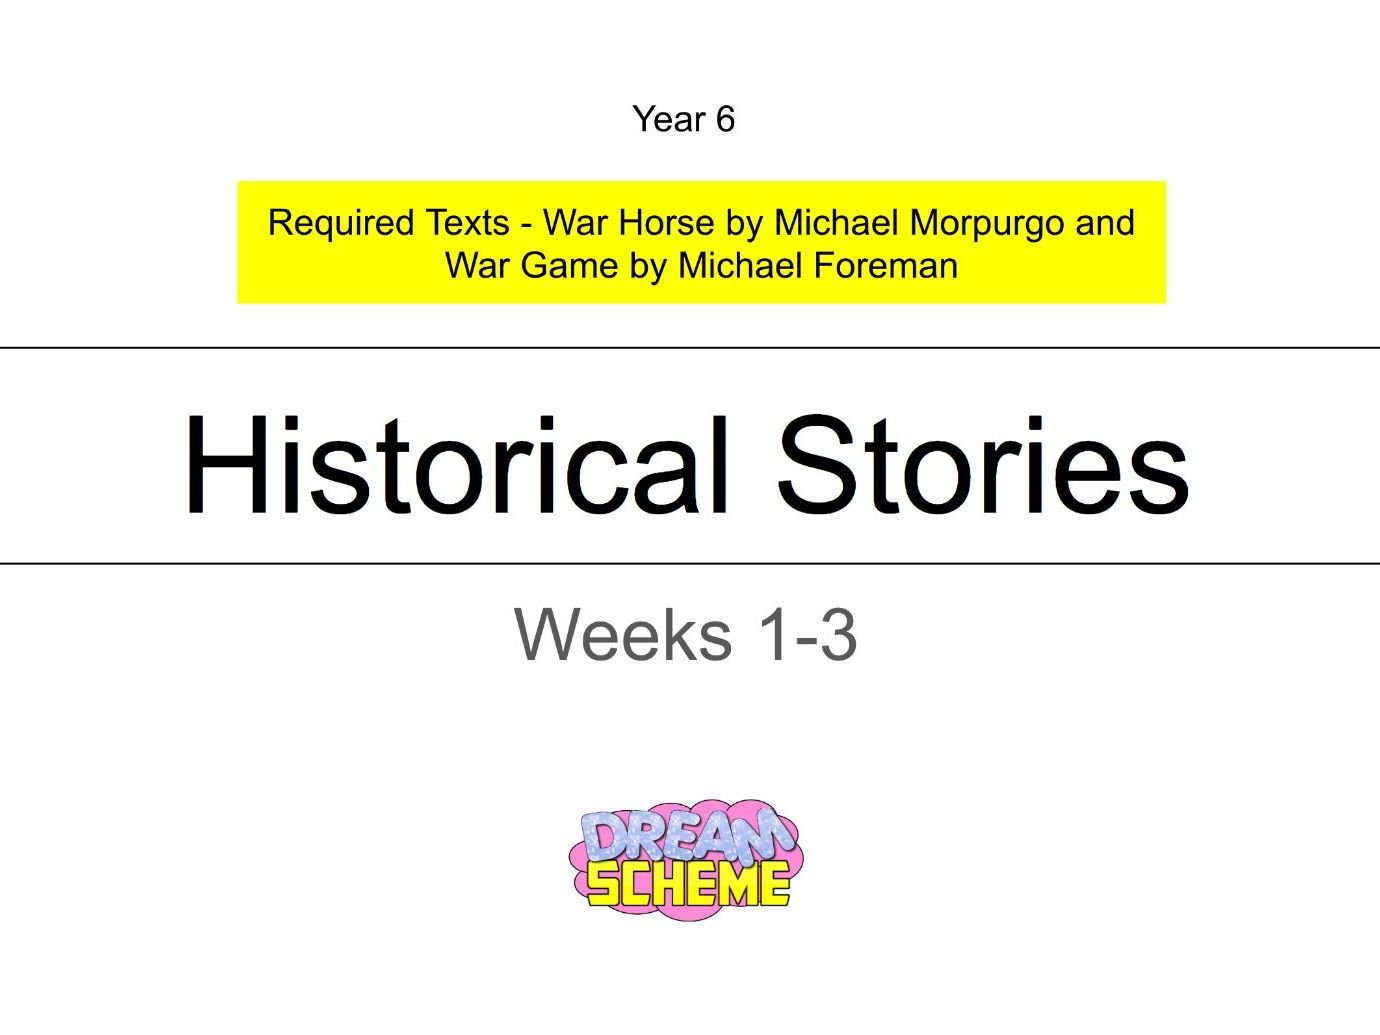 Year 6 - Historical Stories 15 Lessons (Complete Unit)